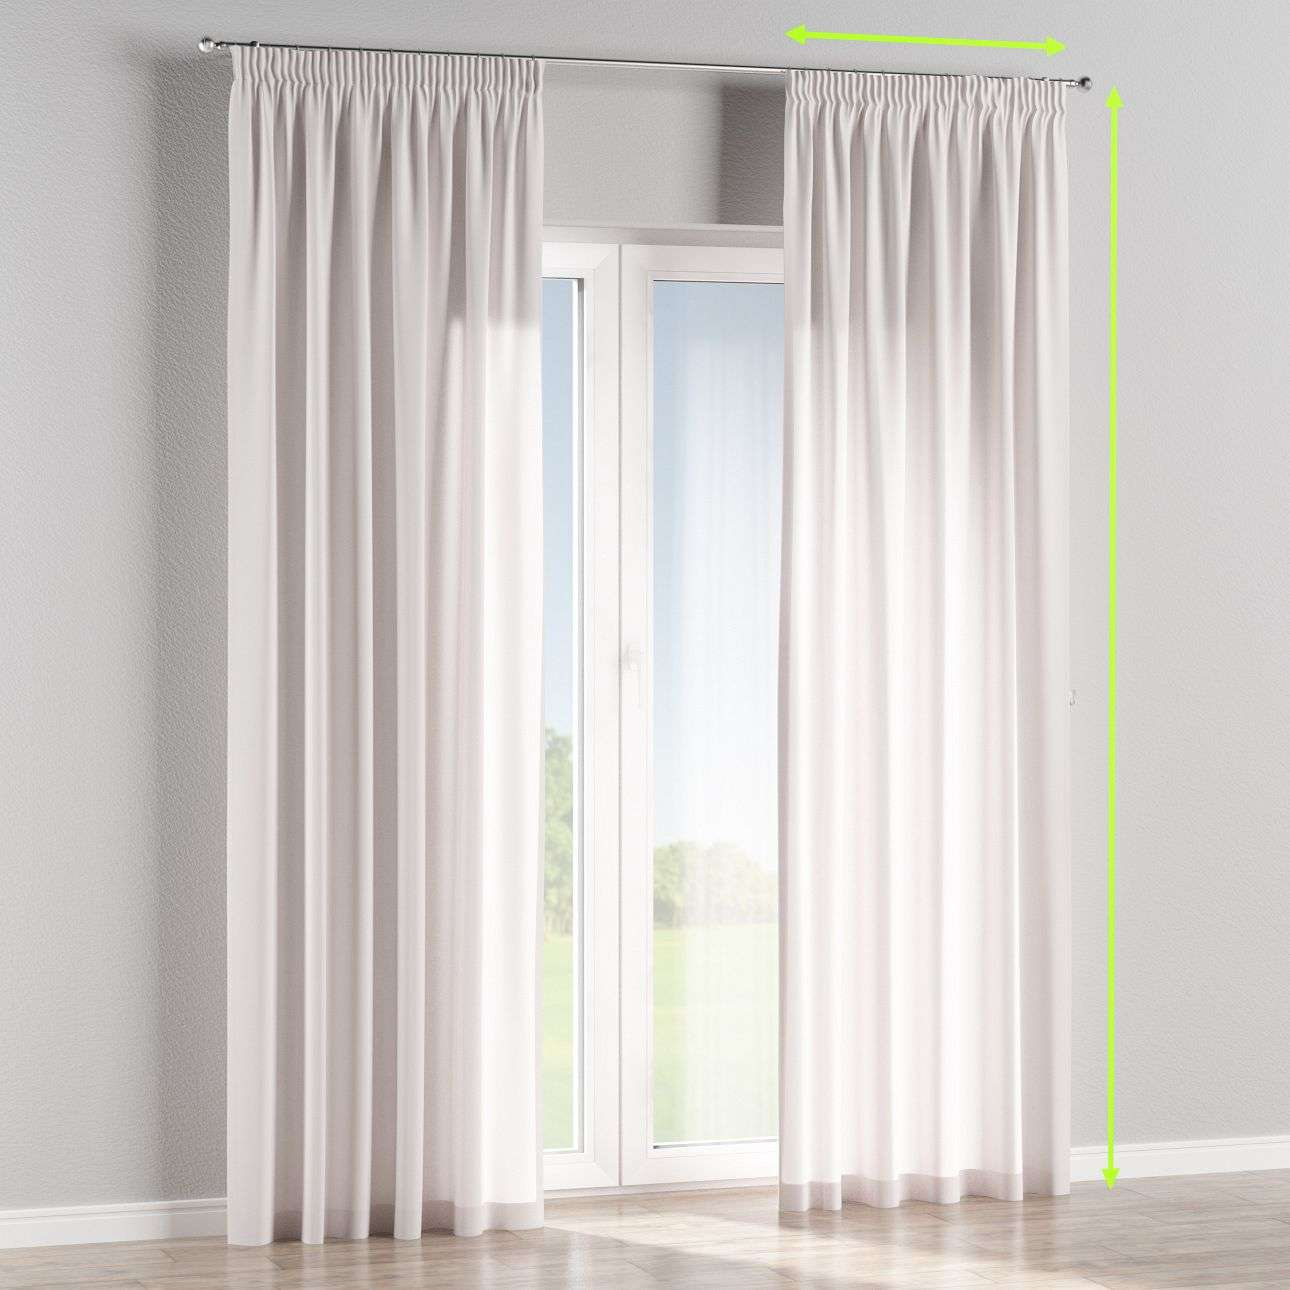 Pencil pleat curtains in collection Cotton Panama, fabric: 702-00